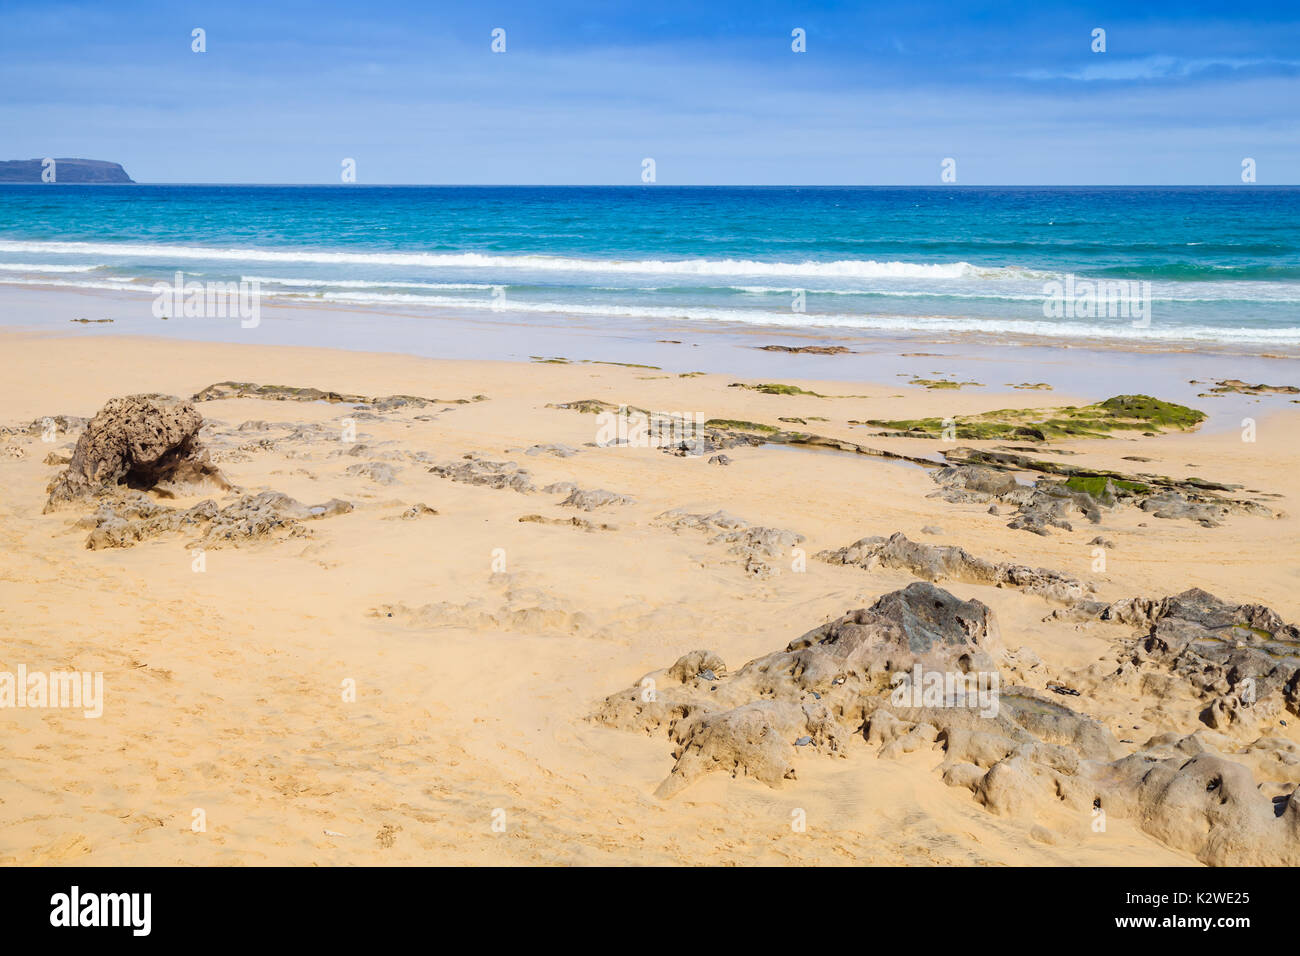 Coastal stones on the beach of Porto Santo, island in the Madeira archipelago - Stock Image